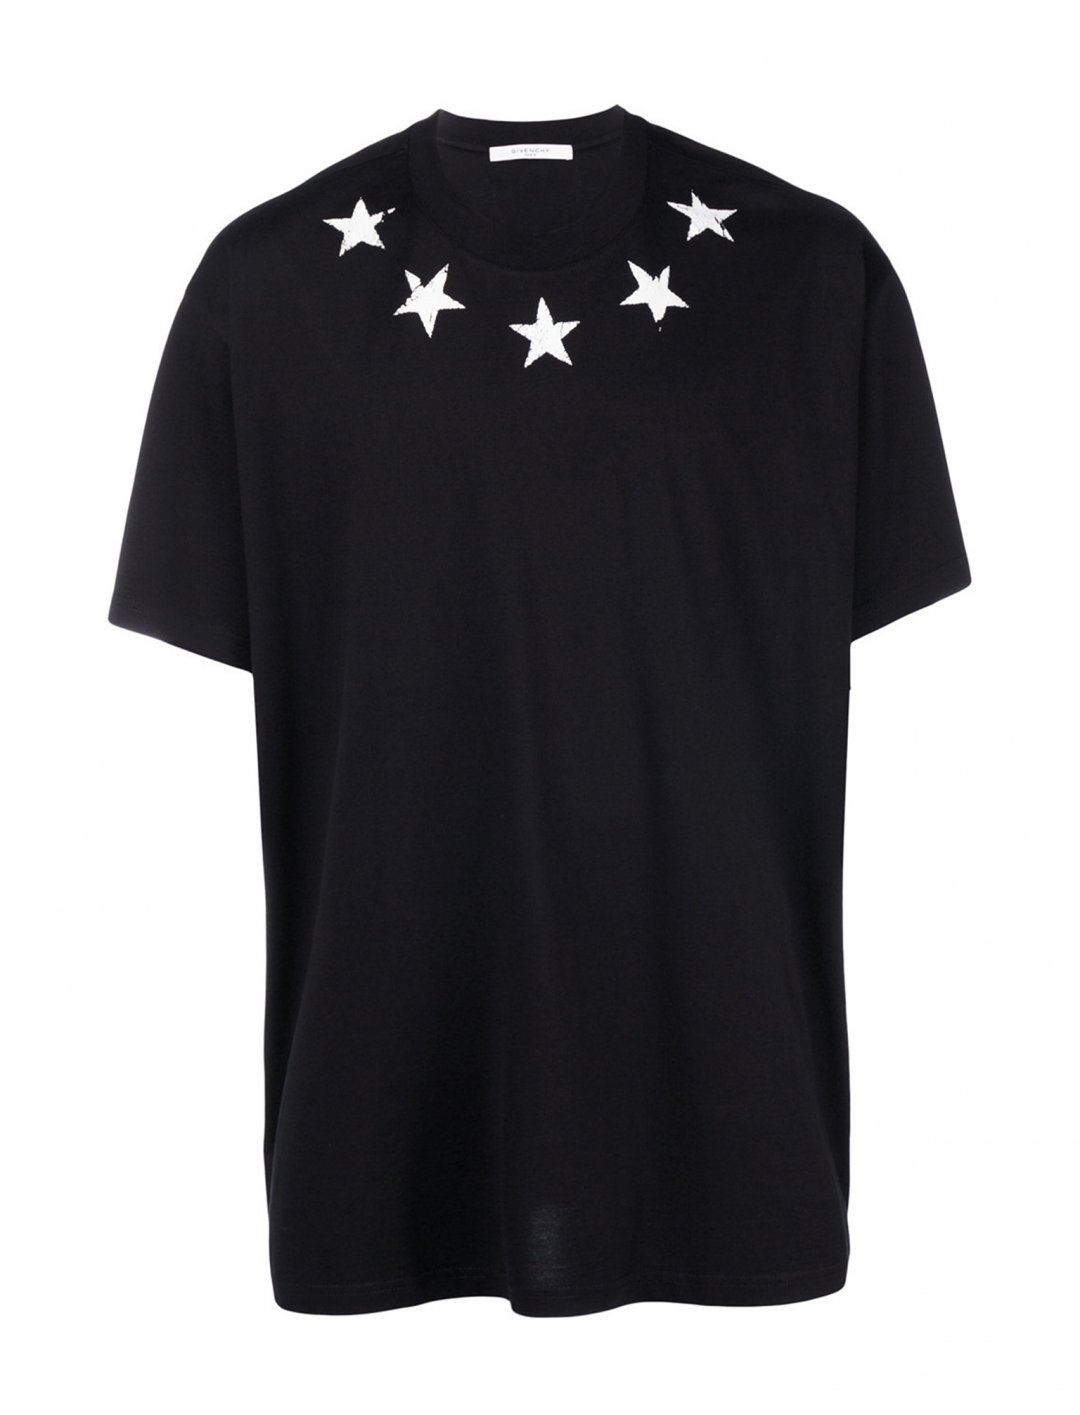 "B Young's Star T-Shirt {""id"":5,""product_section_id"":1,""name"":""Clothing"",""order"":5} Givenchy"